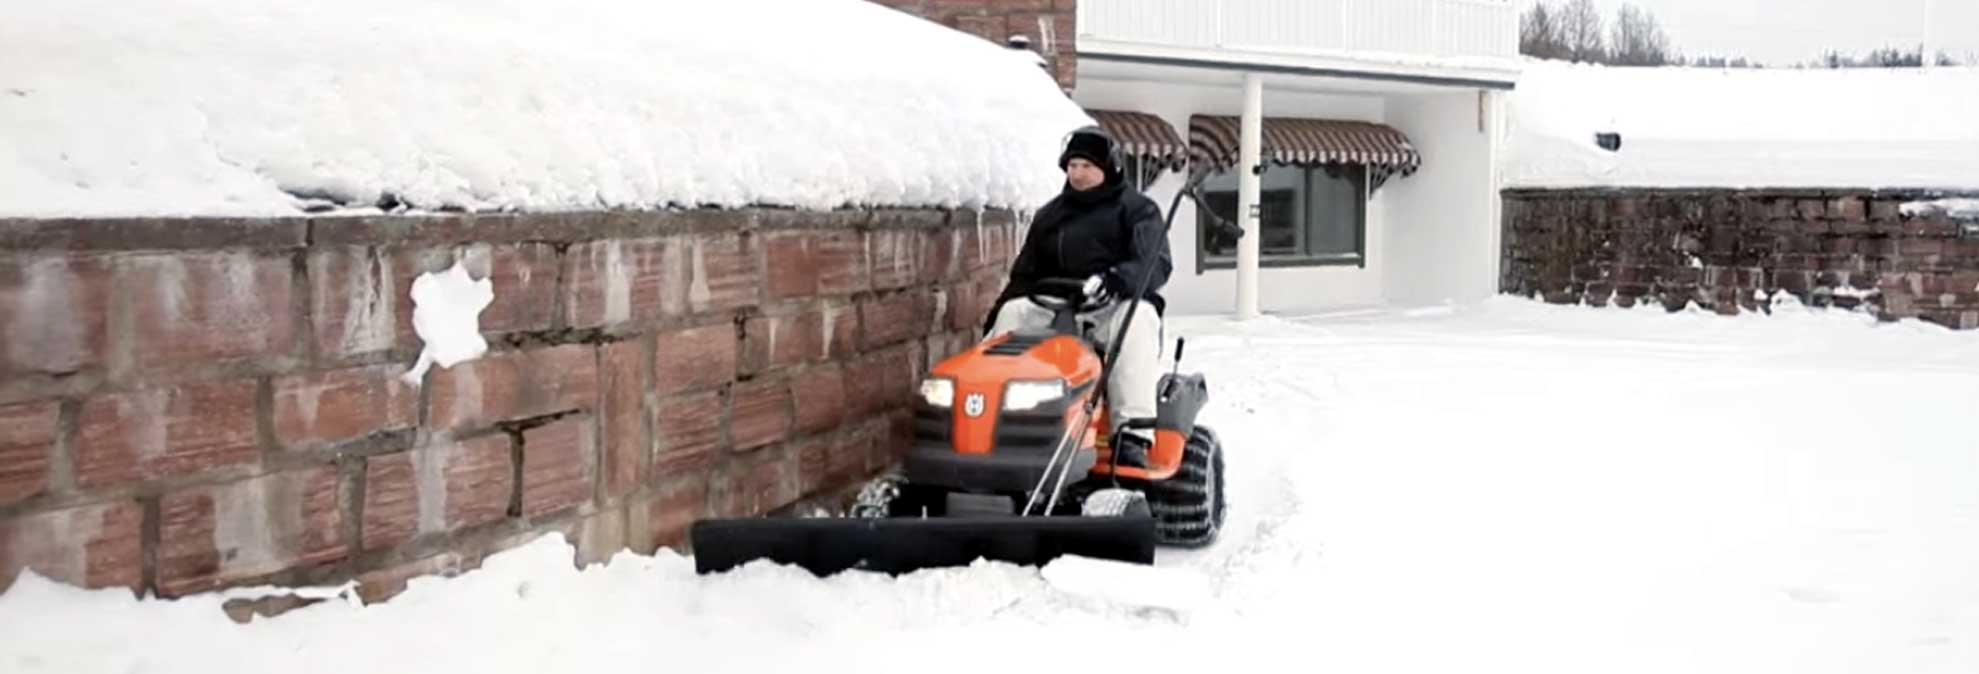 Most Reliable Used Trucks >> 5 Reasons a Riding Mower Snow Plow Is a Bad Idea - Consumer Reports